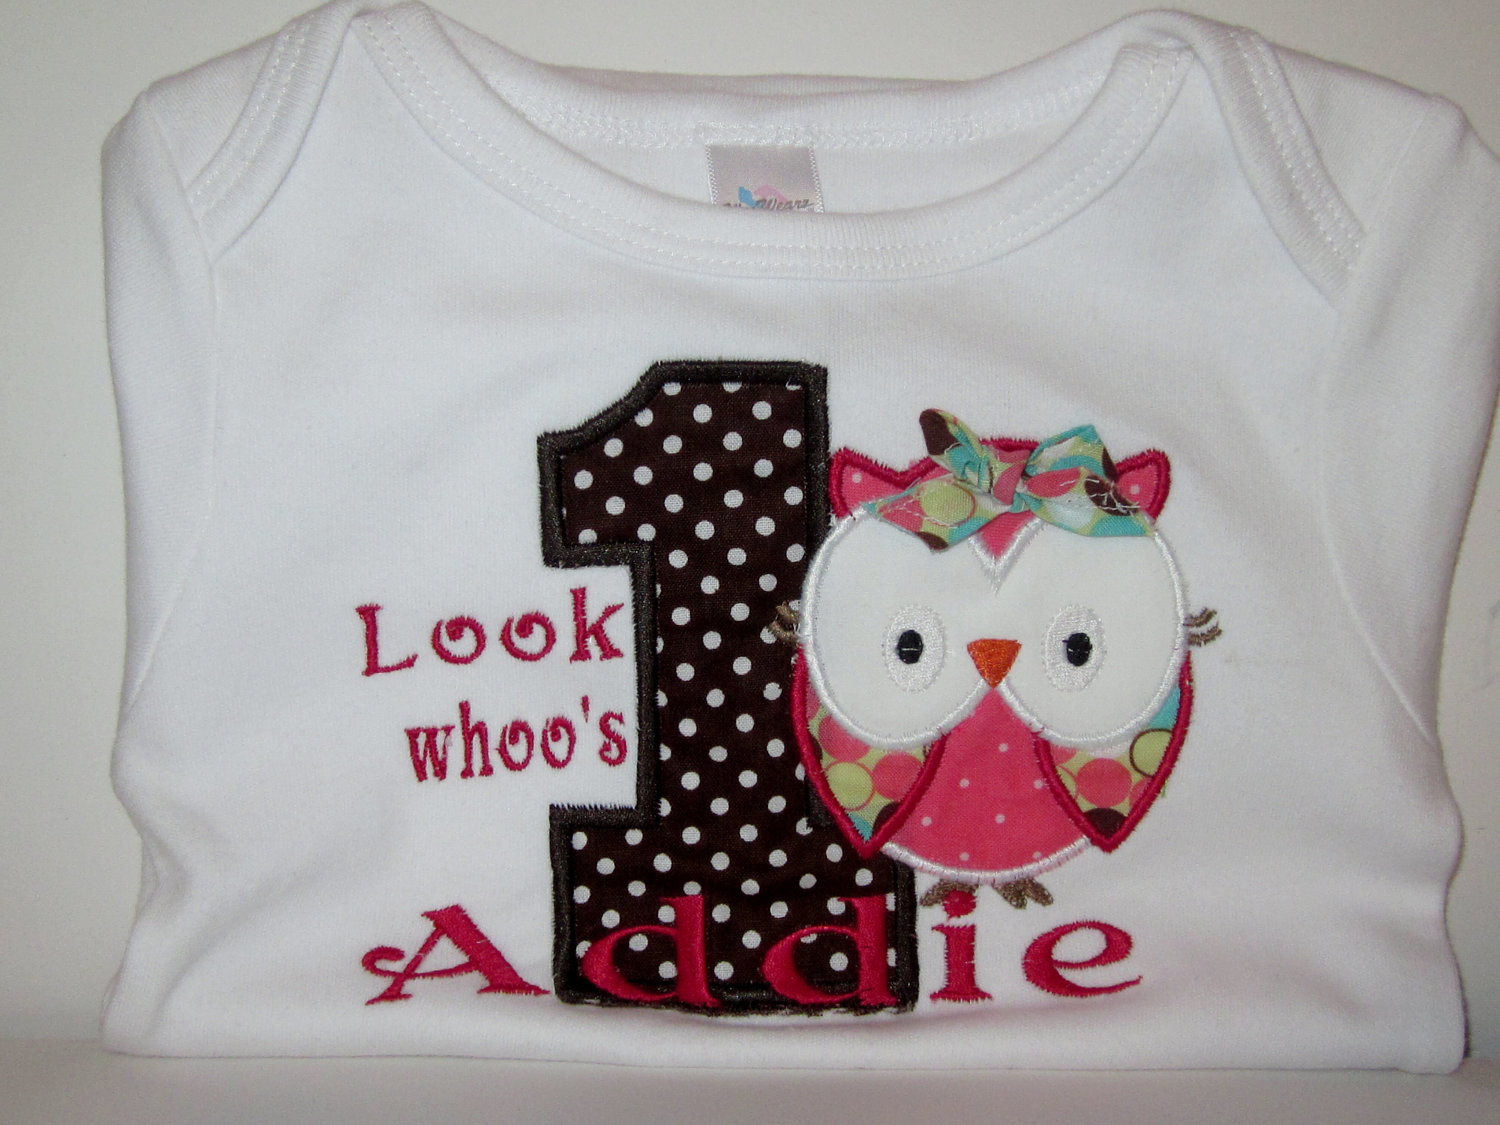 Zippers personalized t shirts for kids for Custom kids t shirts